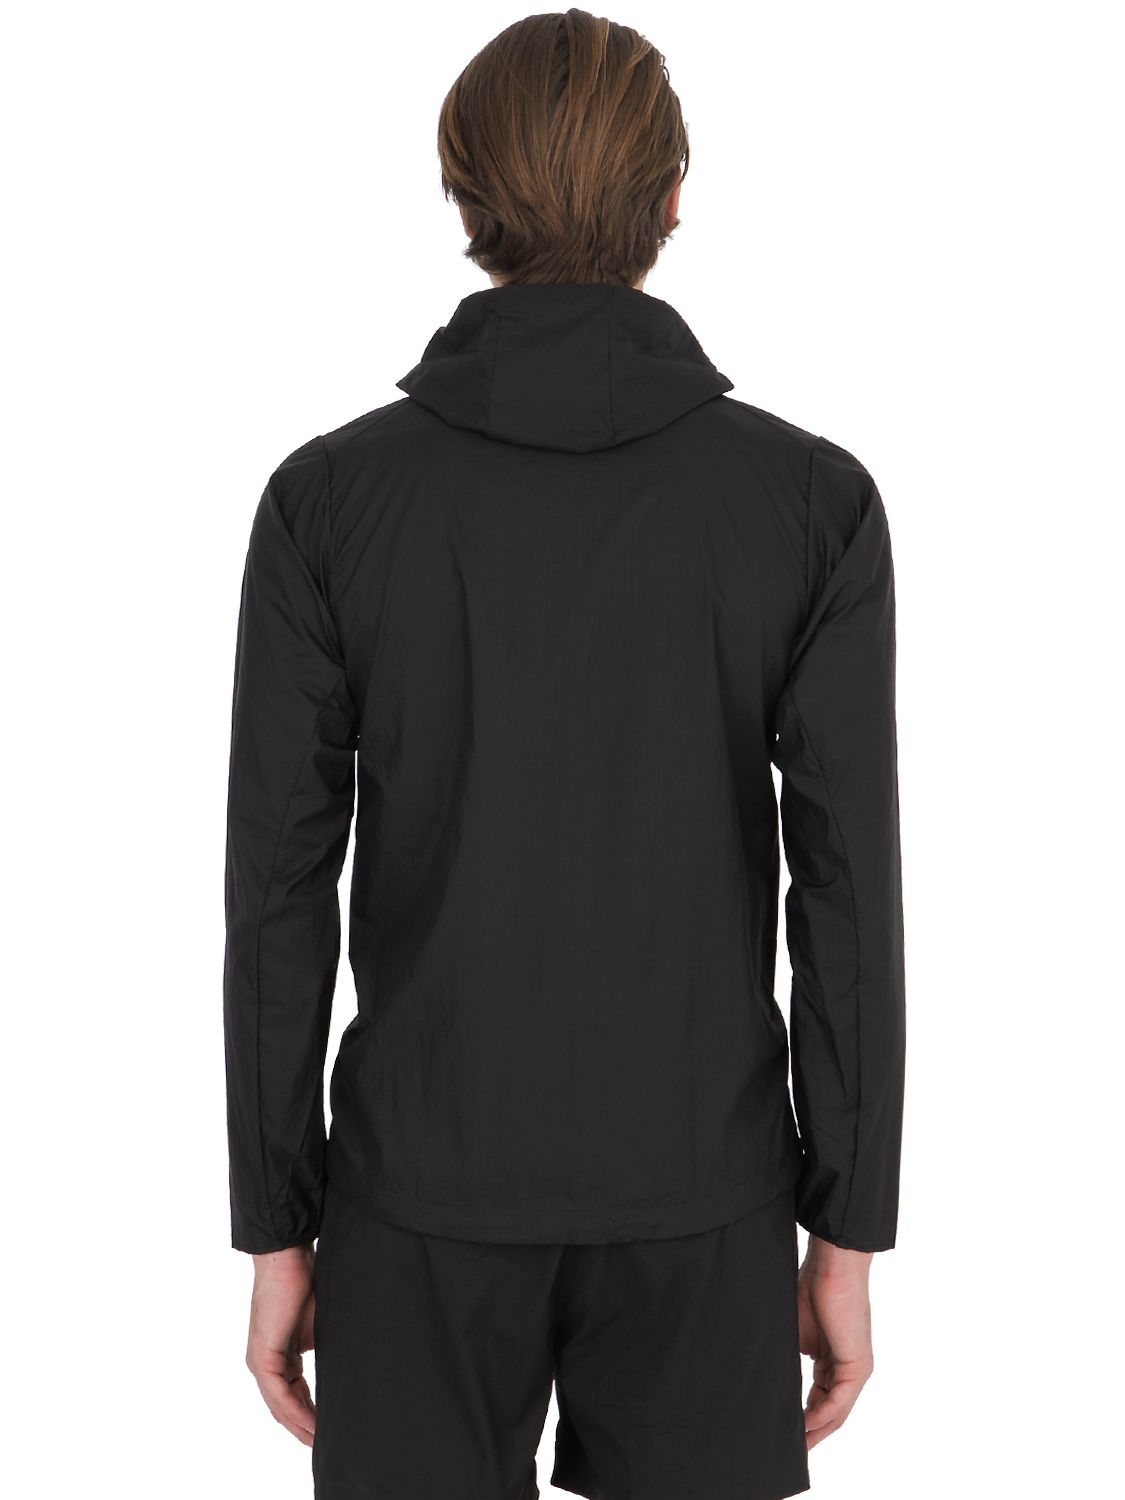 Patagonia Slim Fit Houdini Ripstop Running Jacket in Black for Men